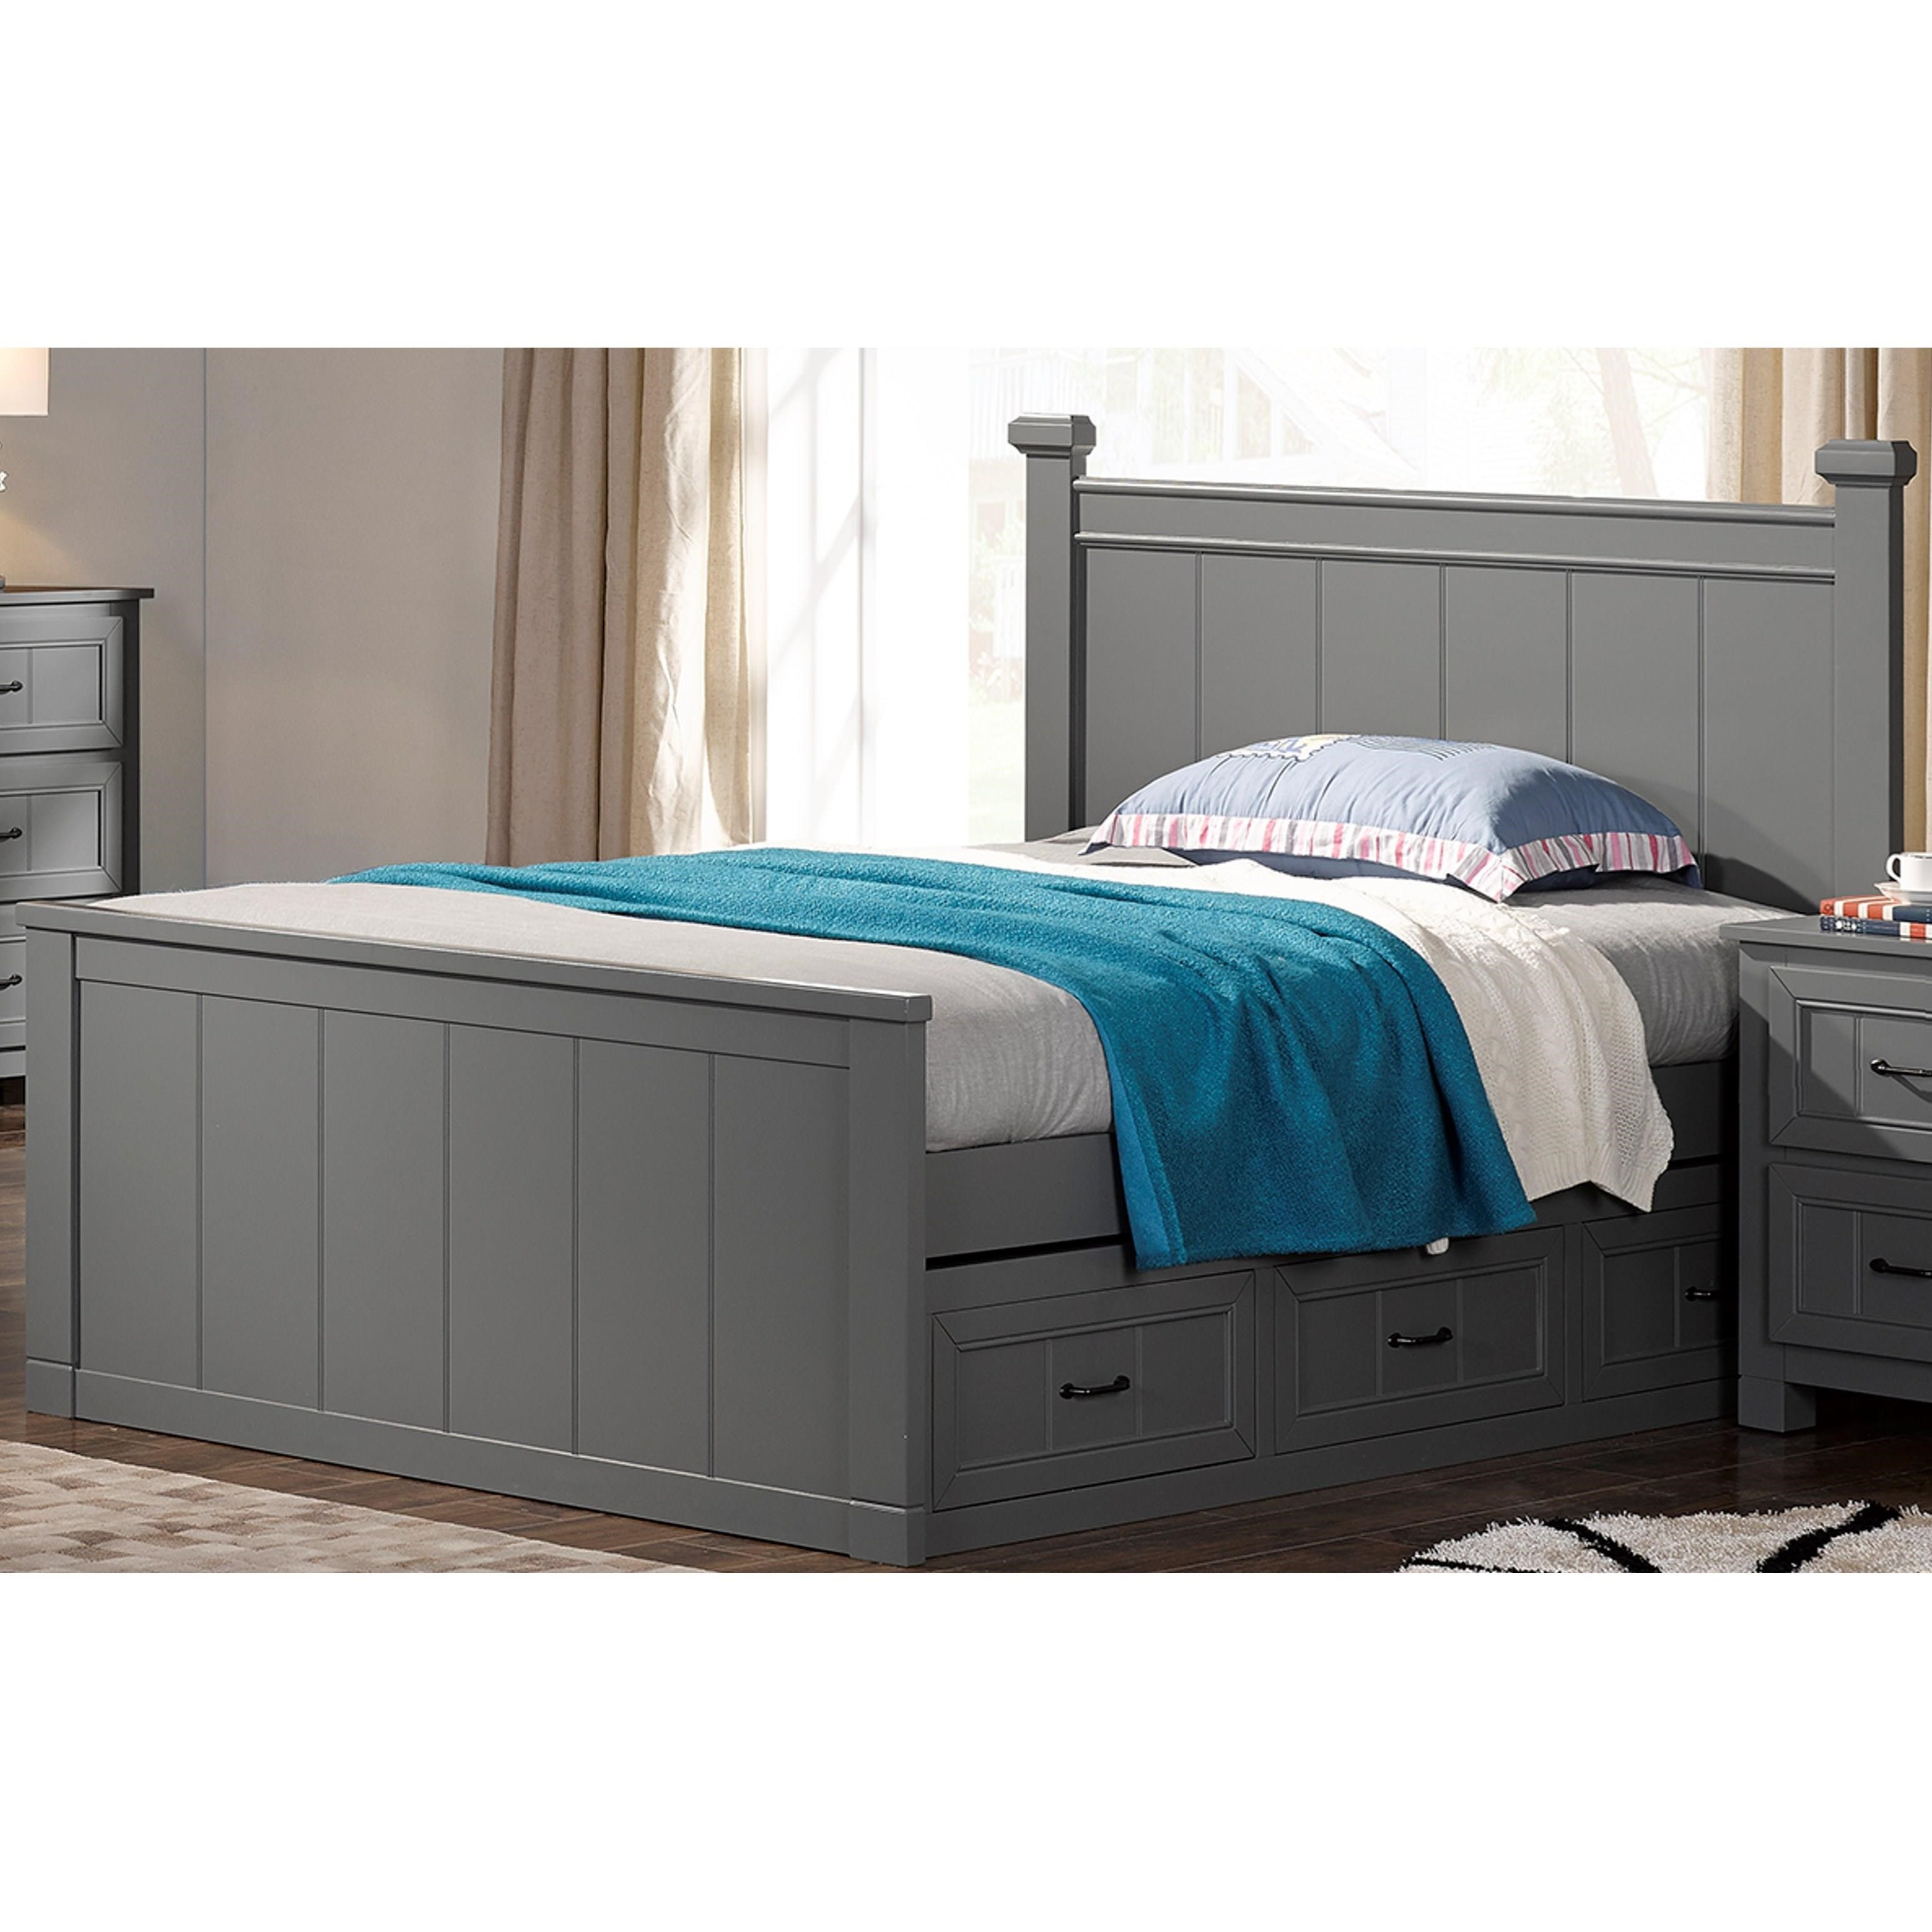 Ashley Furniture Horseheads Ny: New Classic Taylor Youth Bedroom Casual Twin Panel Bed